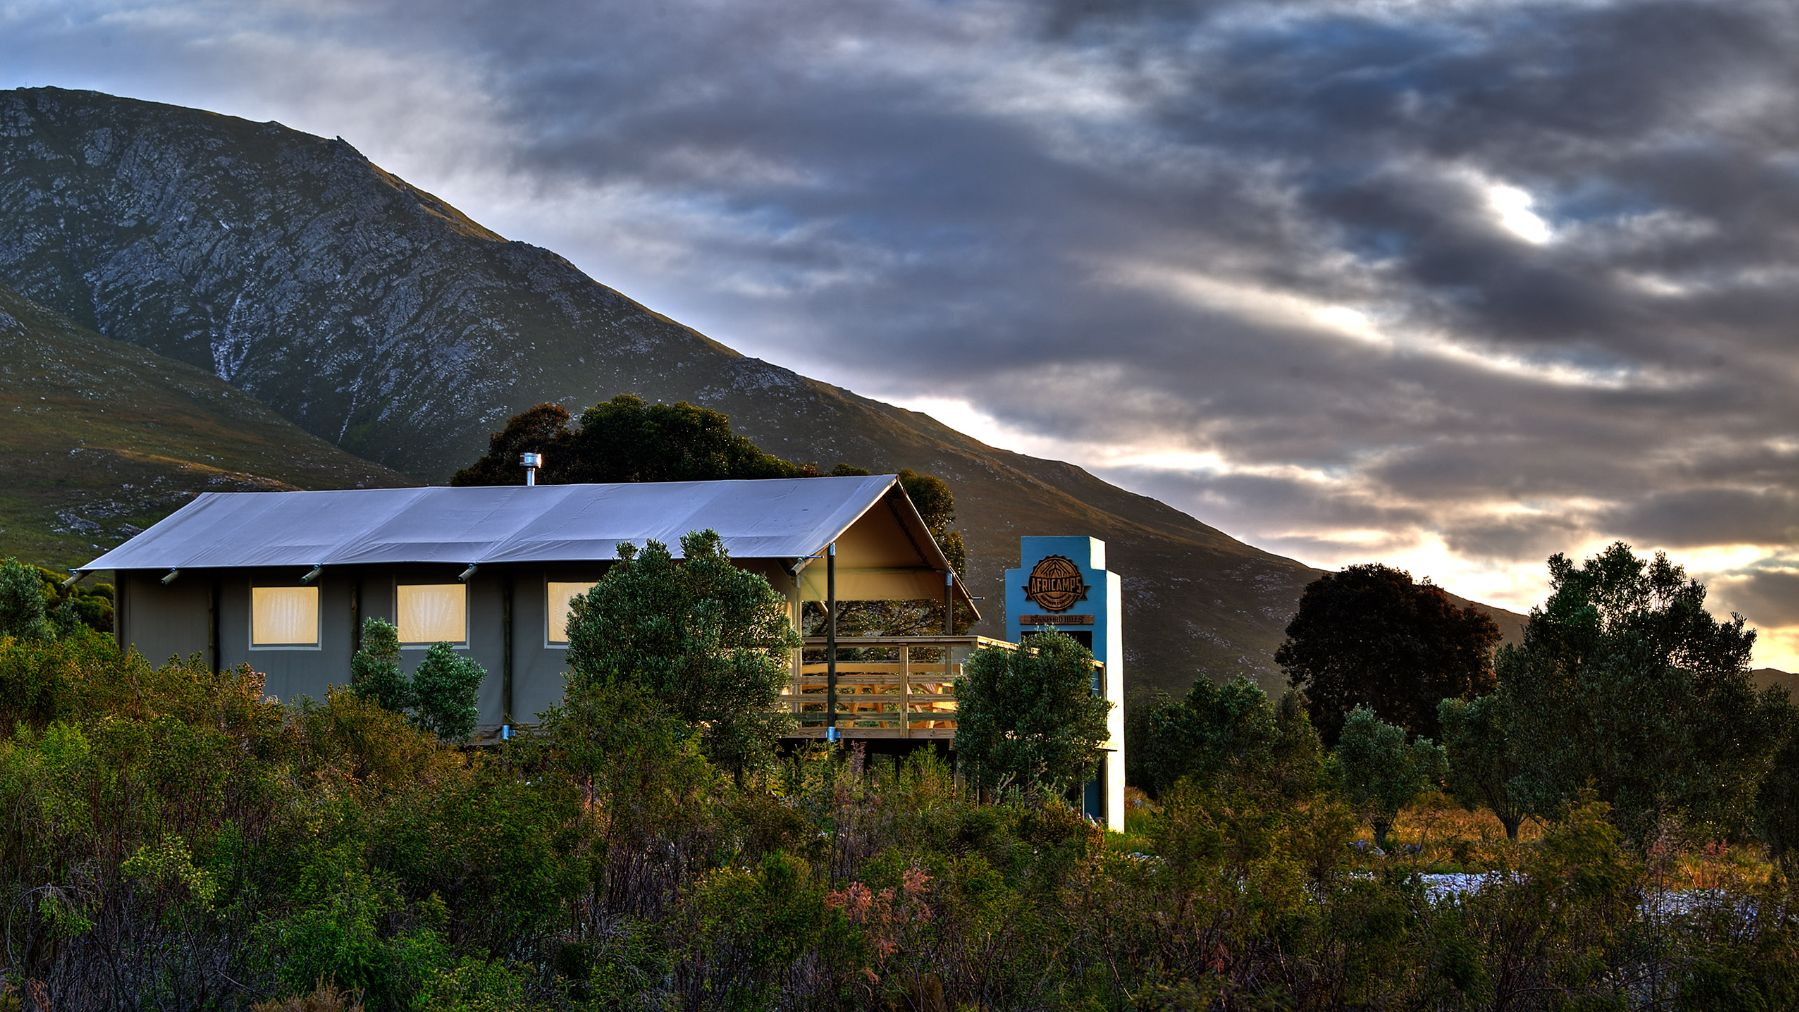 africamps stanford hills glamping south africa winelands